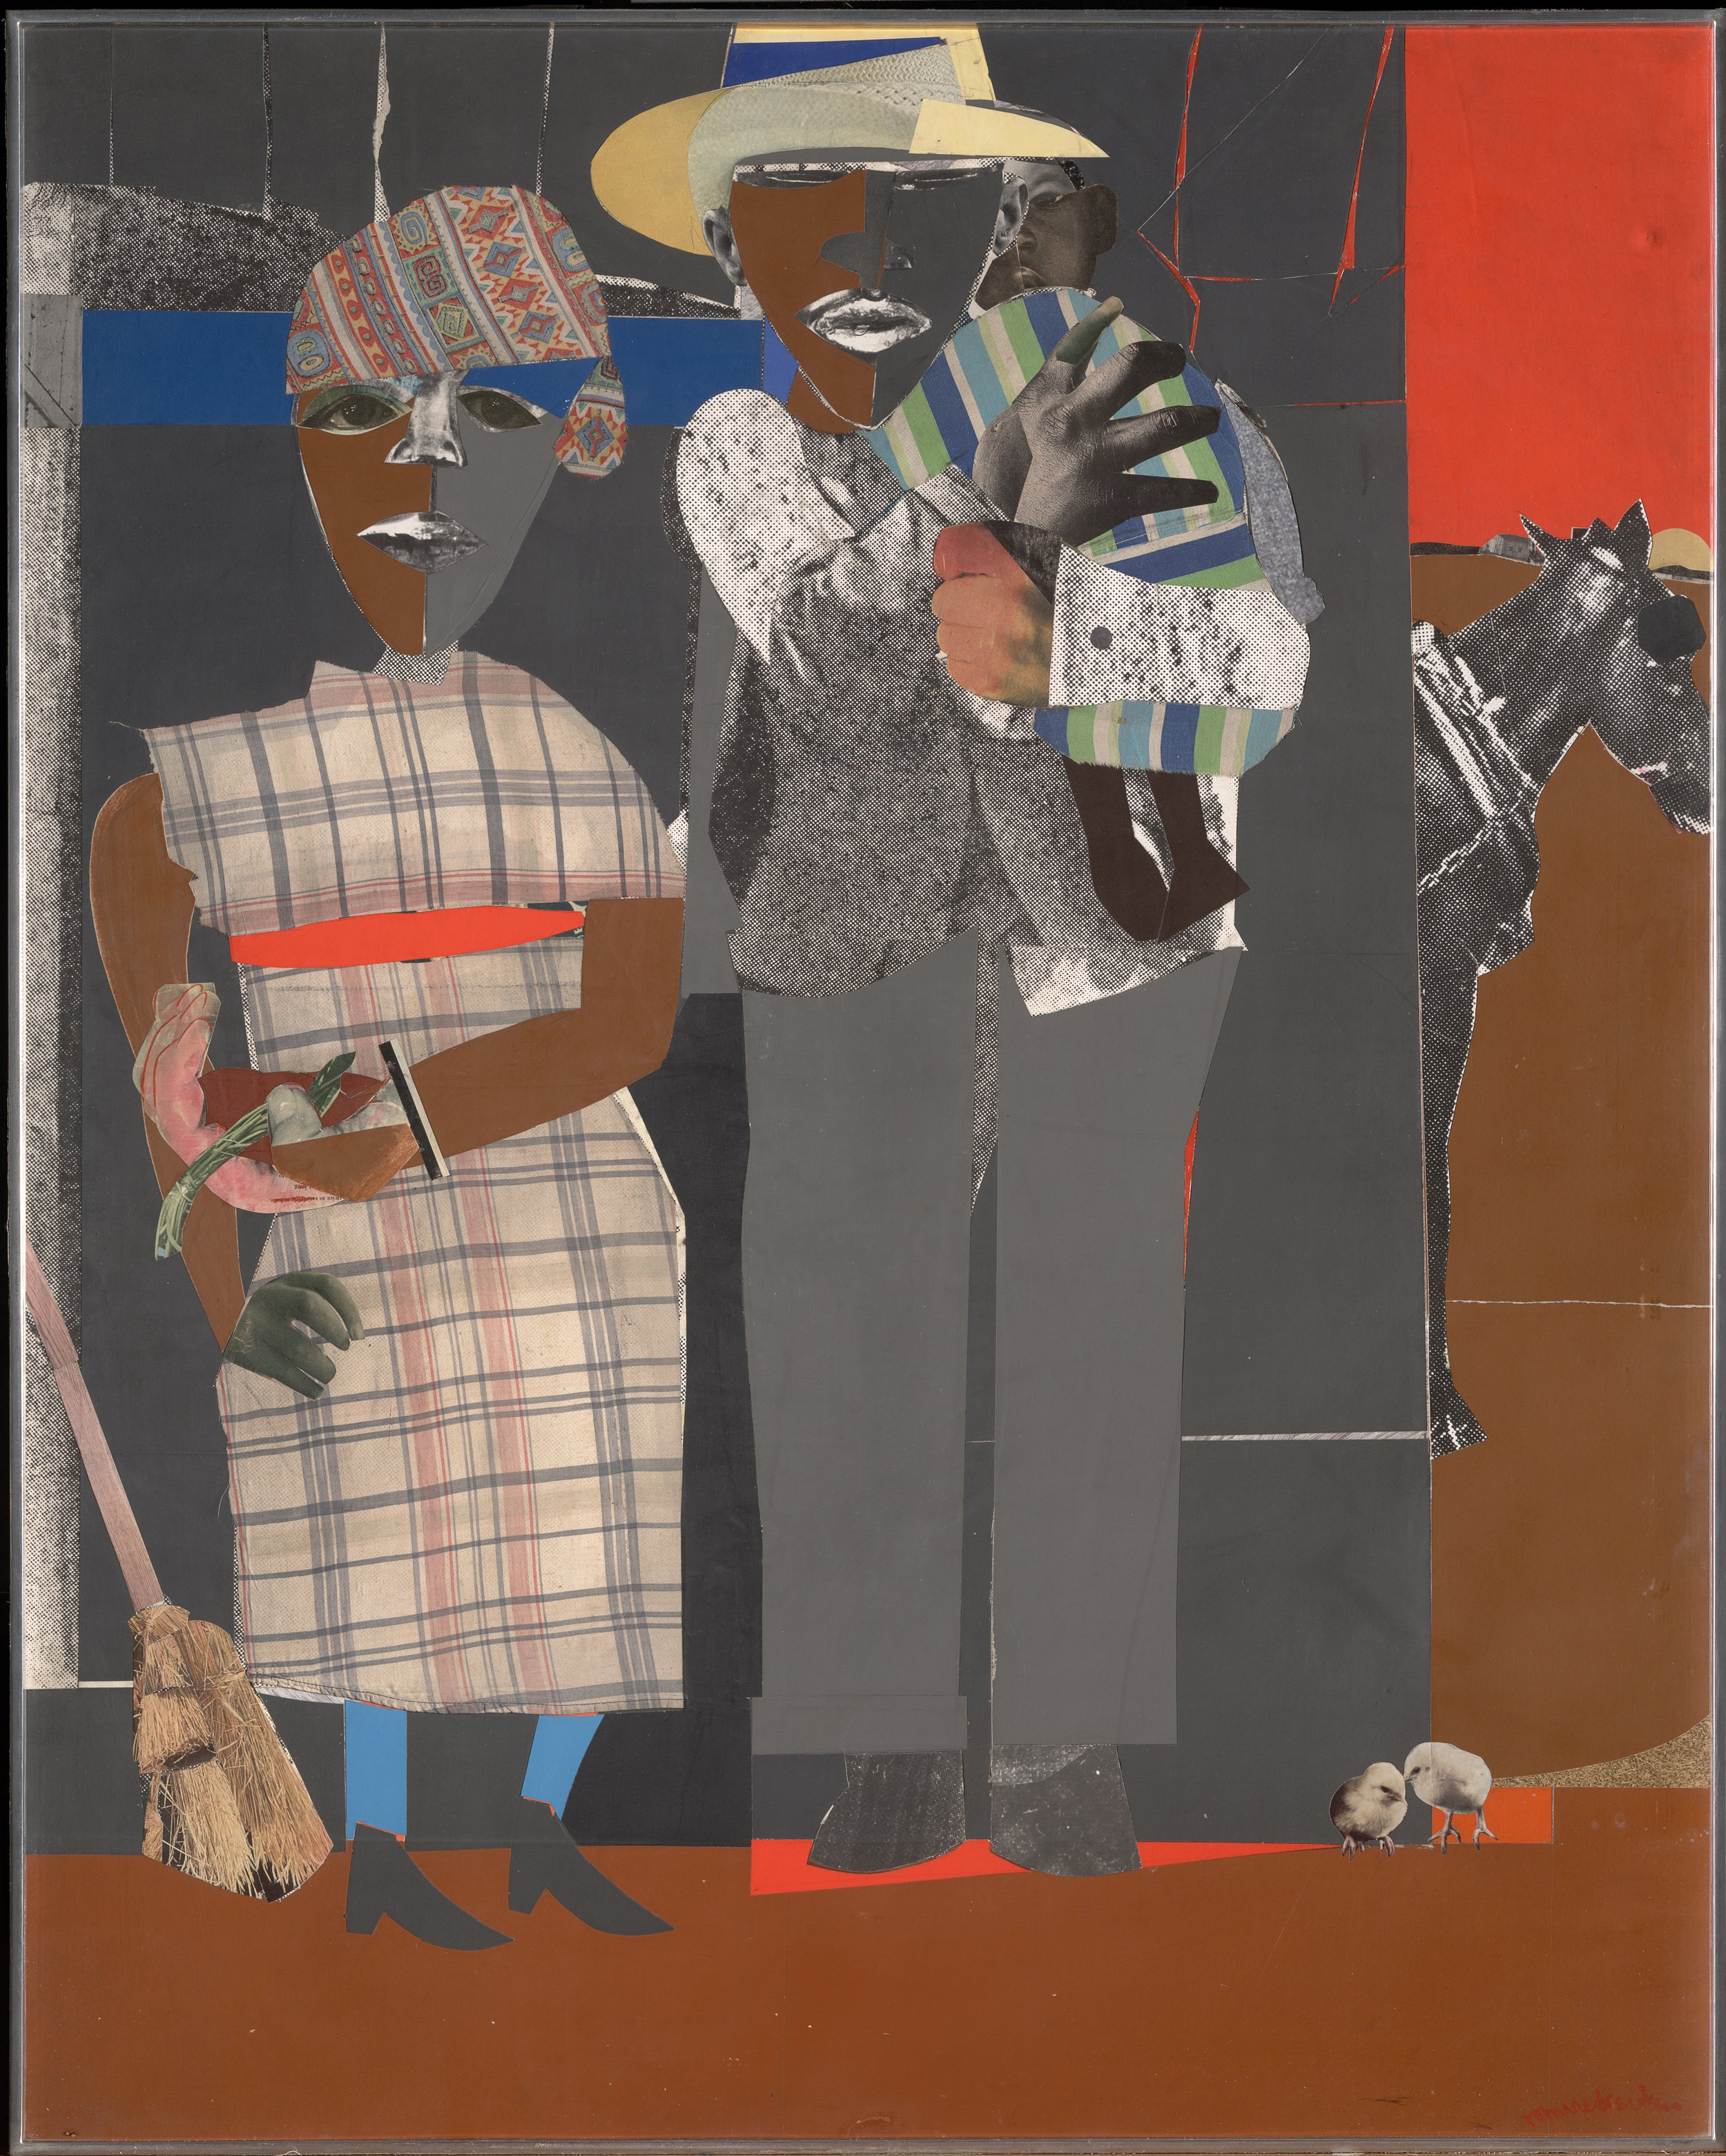 Romare Bearden:  Continuities , 1969; collage on board; 50 x 43 in.; BAMPFA, gift of the Childe Hassam Fund of the American Academy of Arts and Letters. © 2019   Romare Bearden Foundation/Licensed by VAGA at Artists Rights Society (ARS), NY.